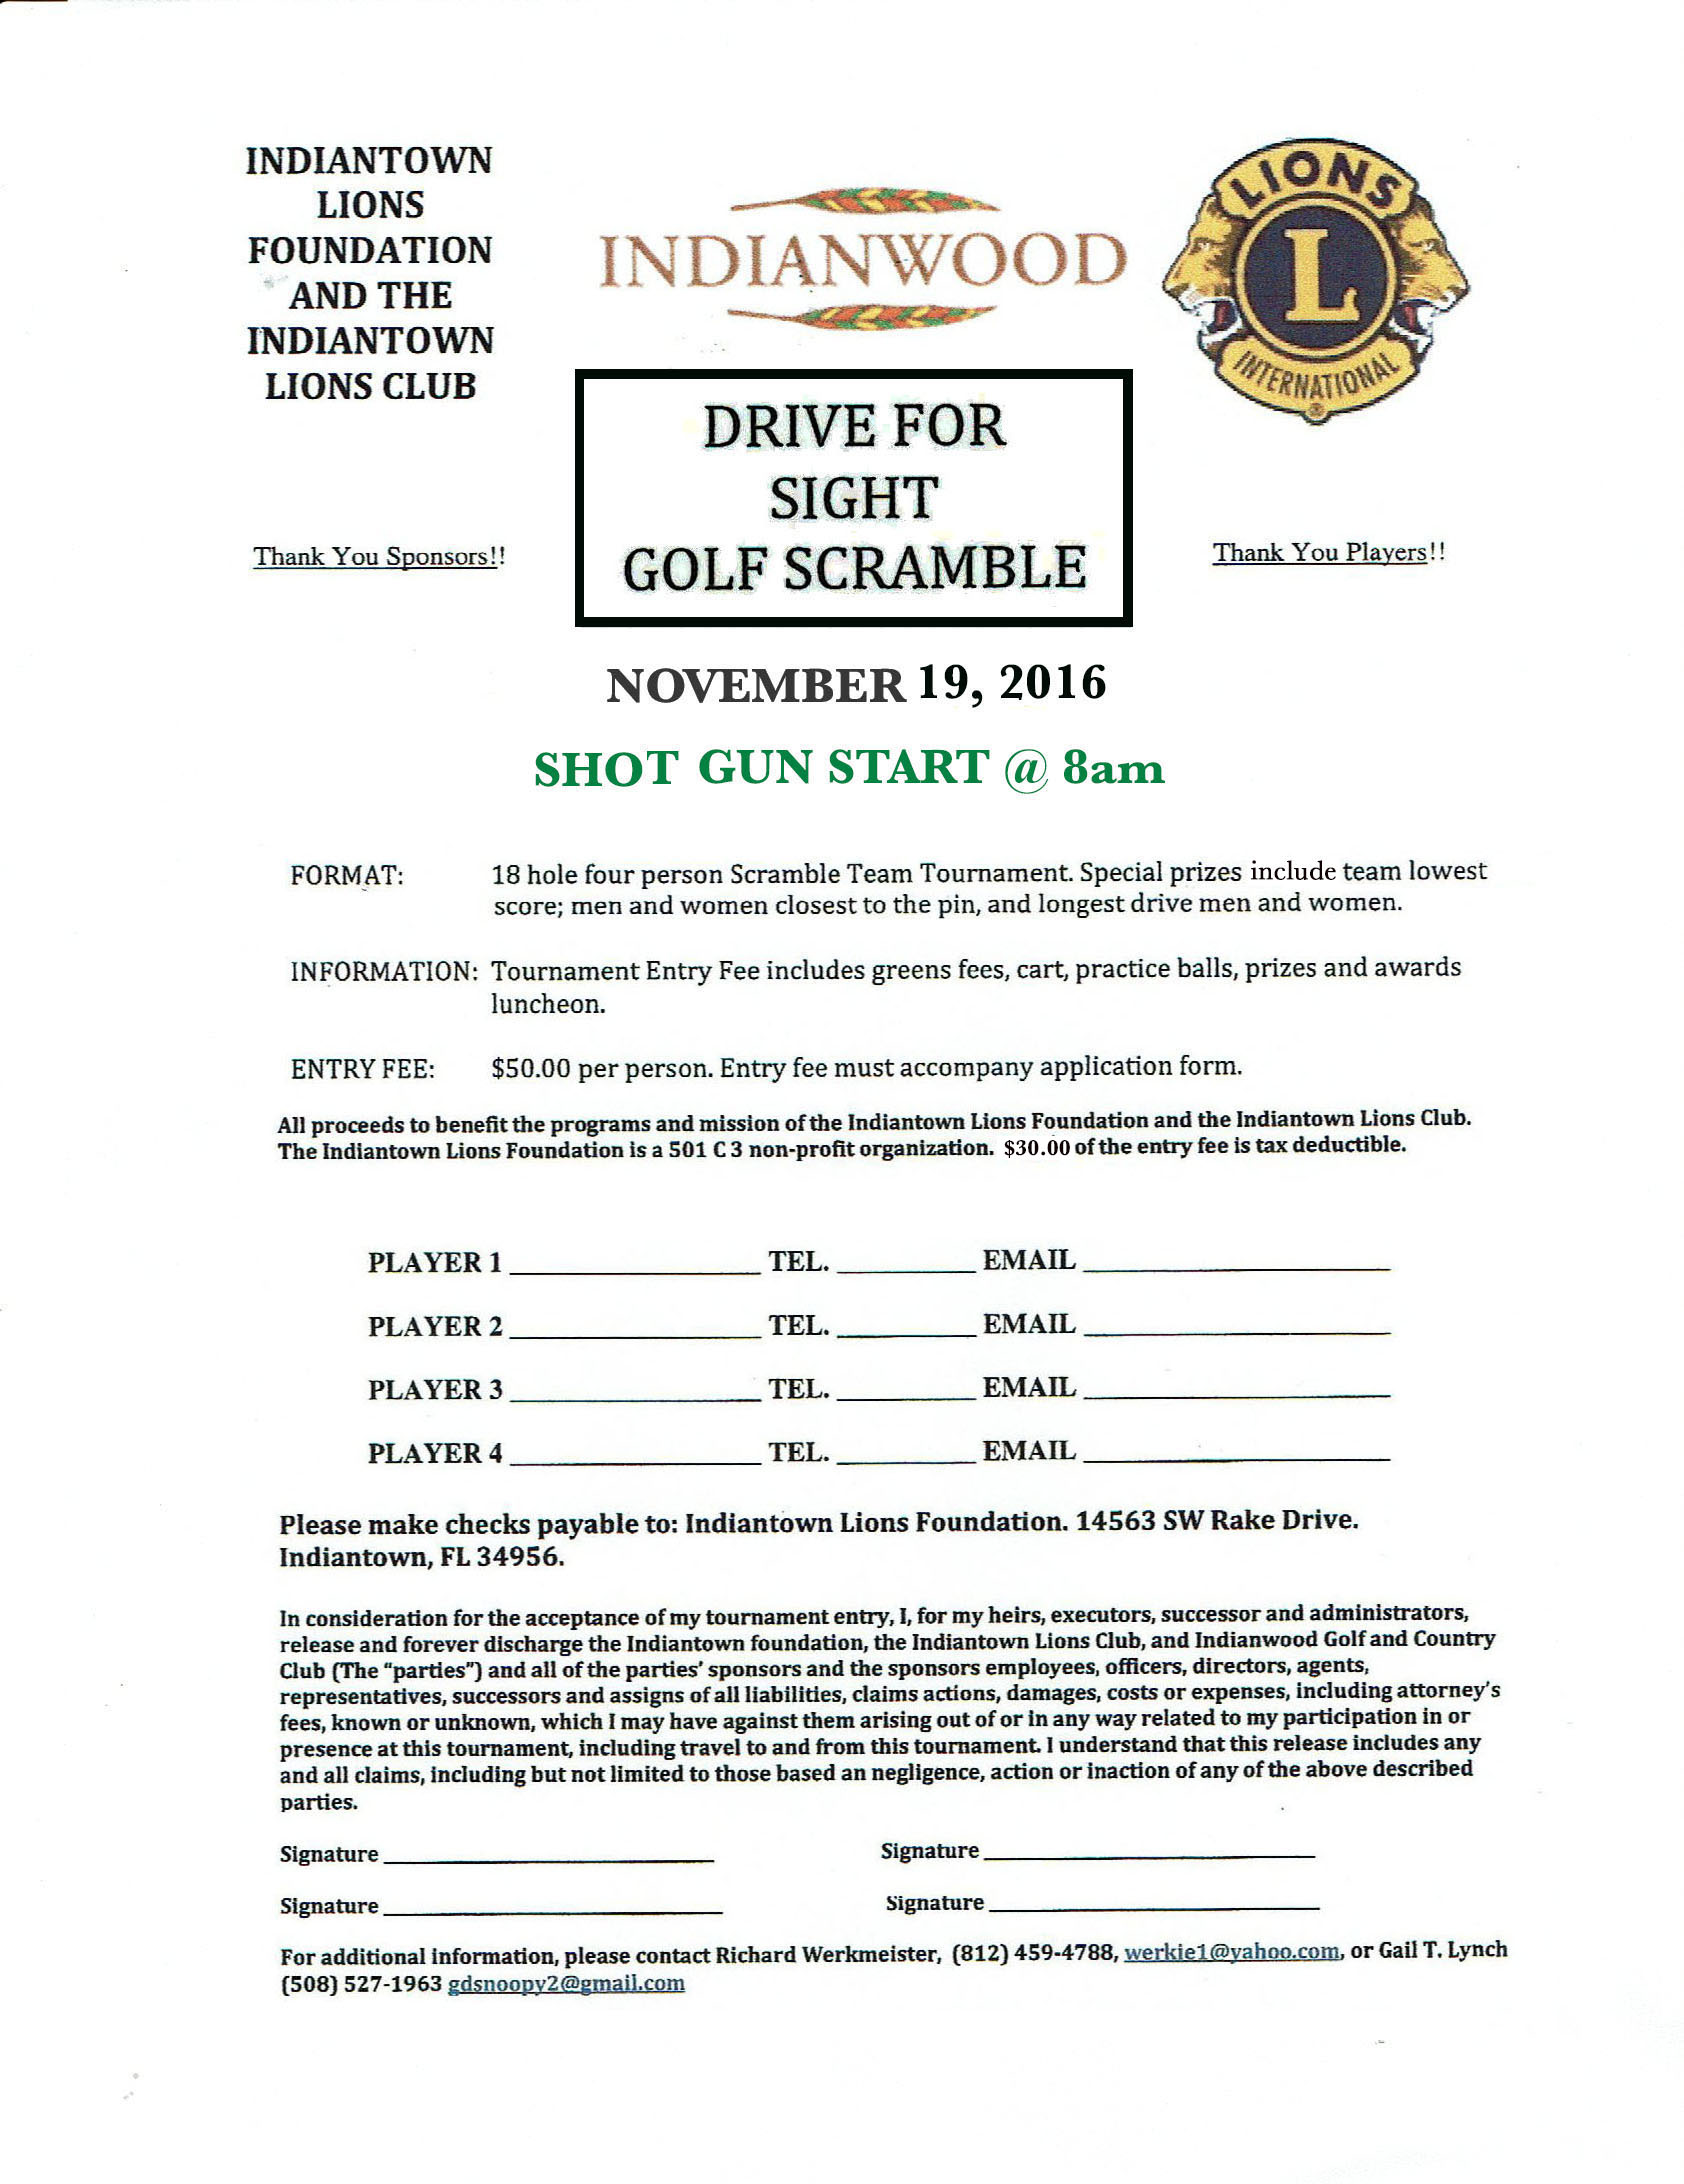 Indiantown Chamber of Commerce - Drive for Sight Golf Scramble